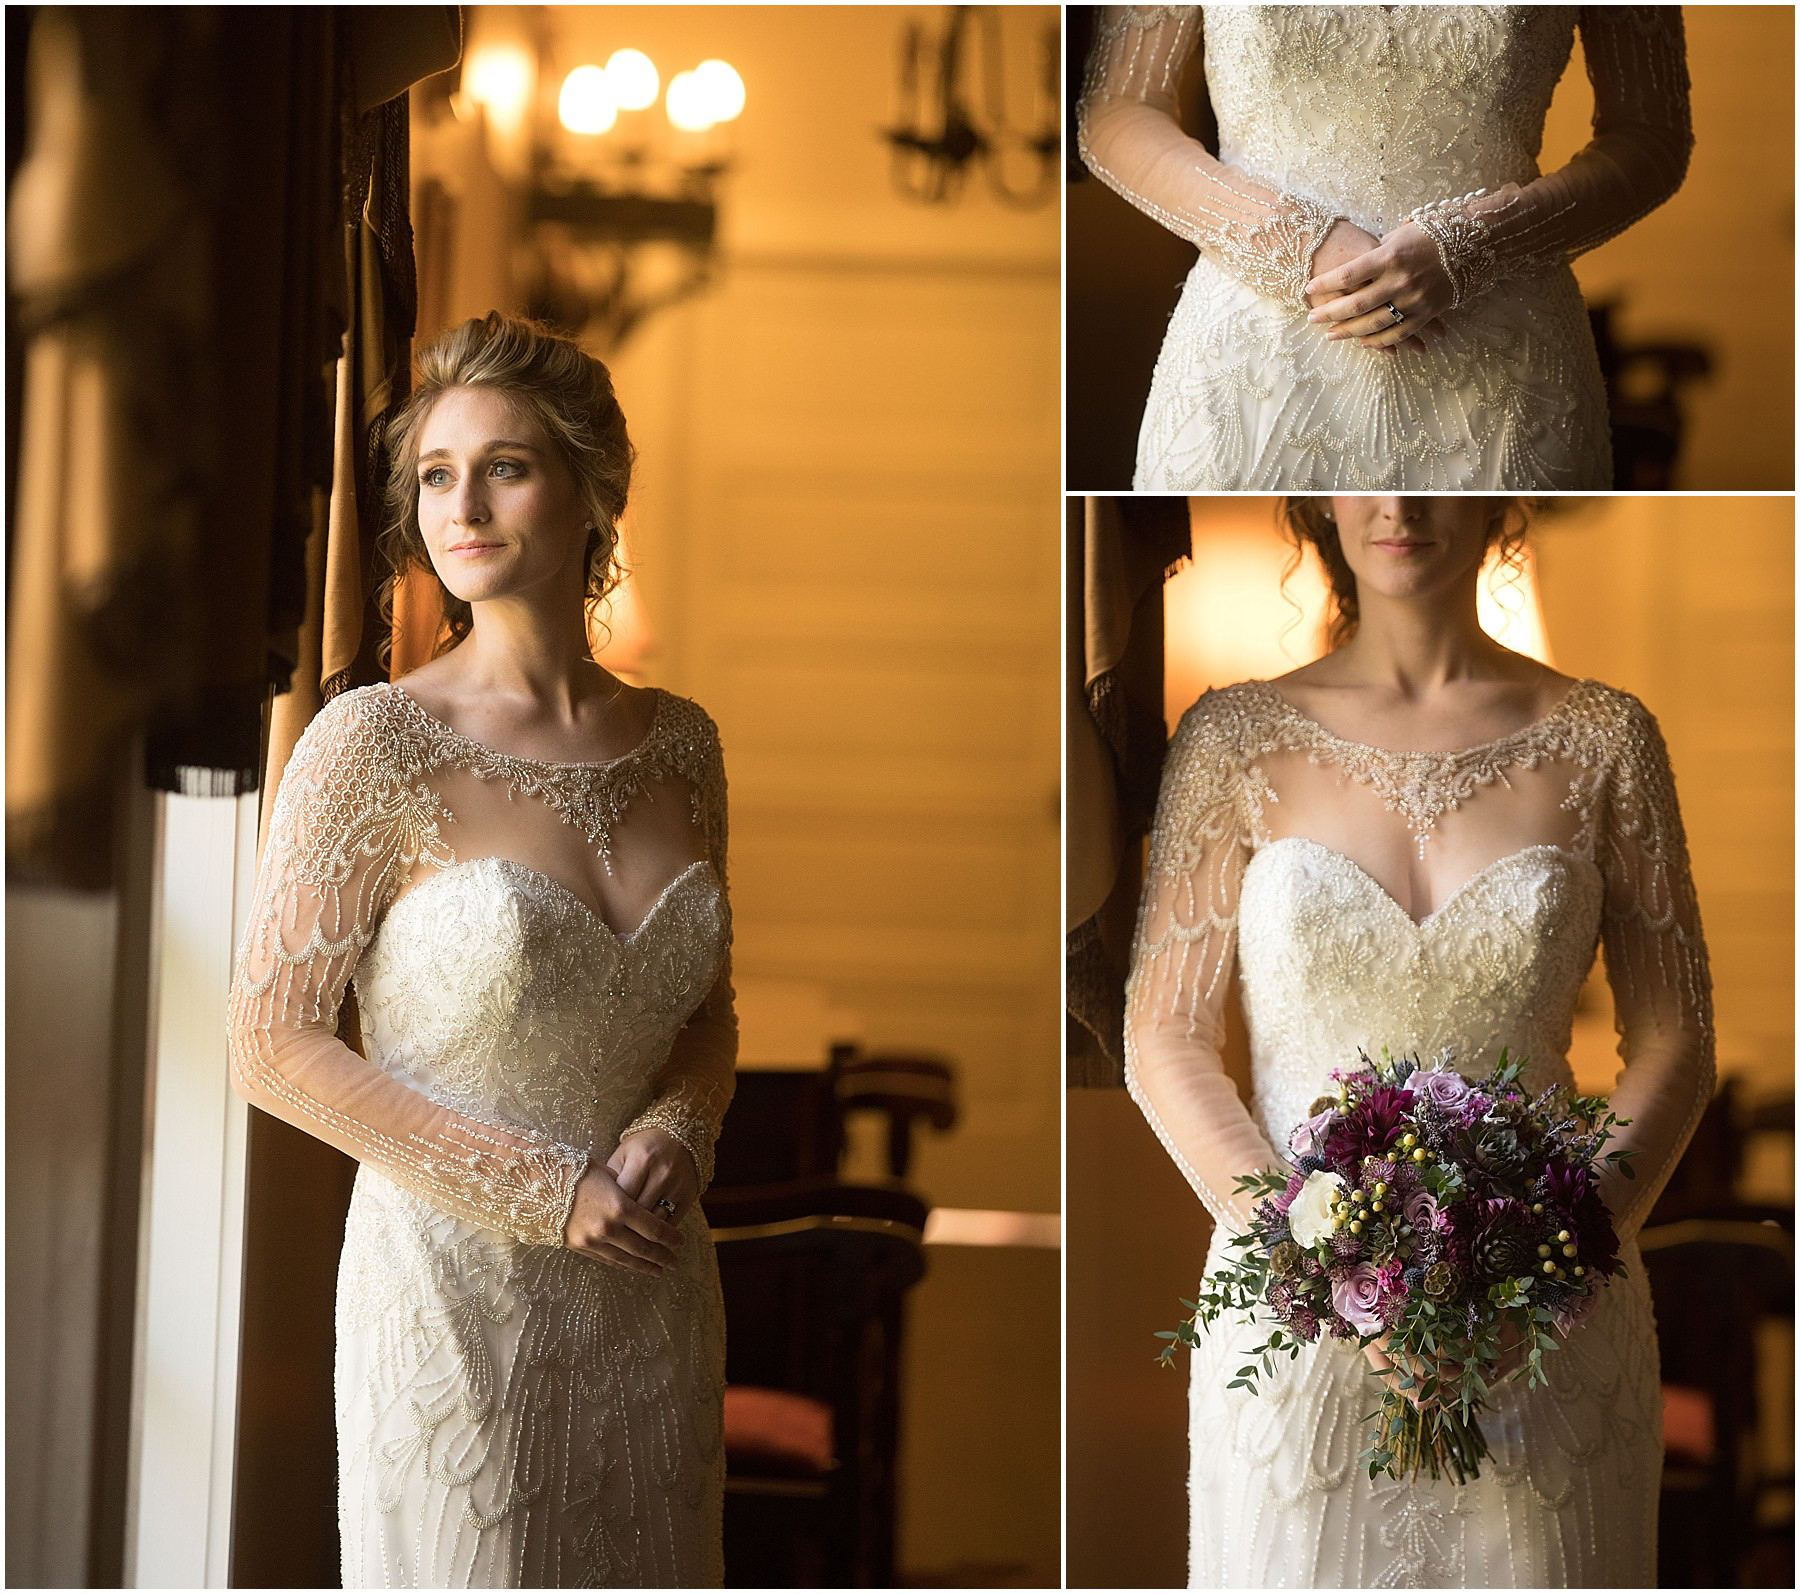 Twickenham House Wedding Photographers - Elegant Bride